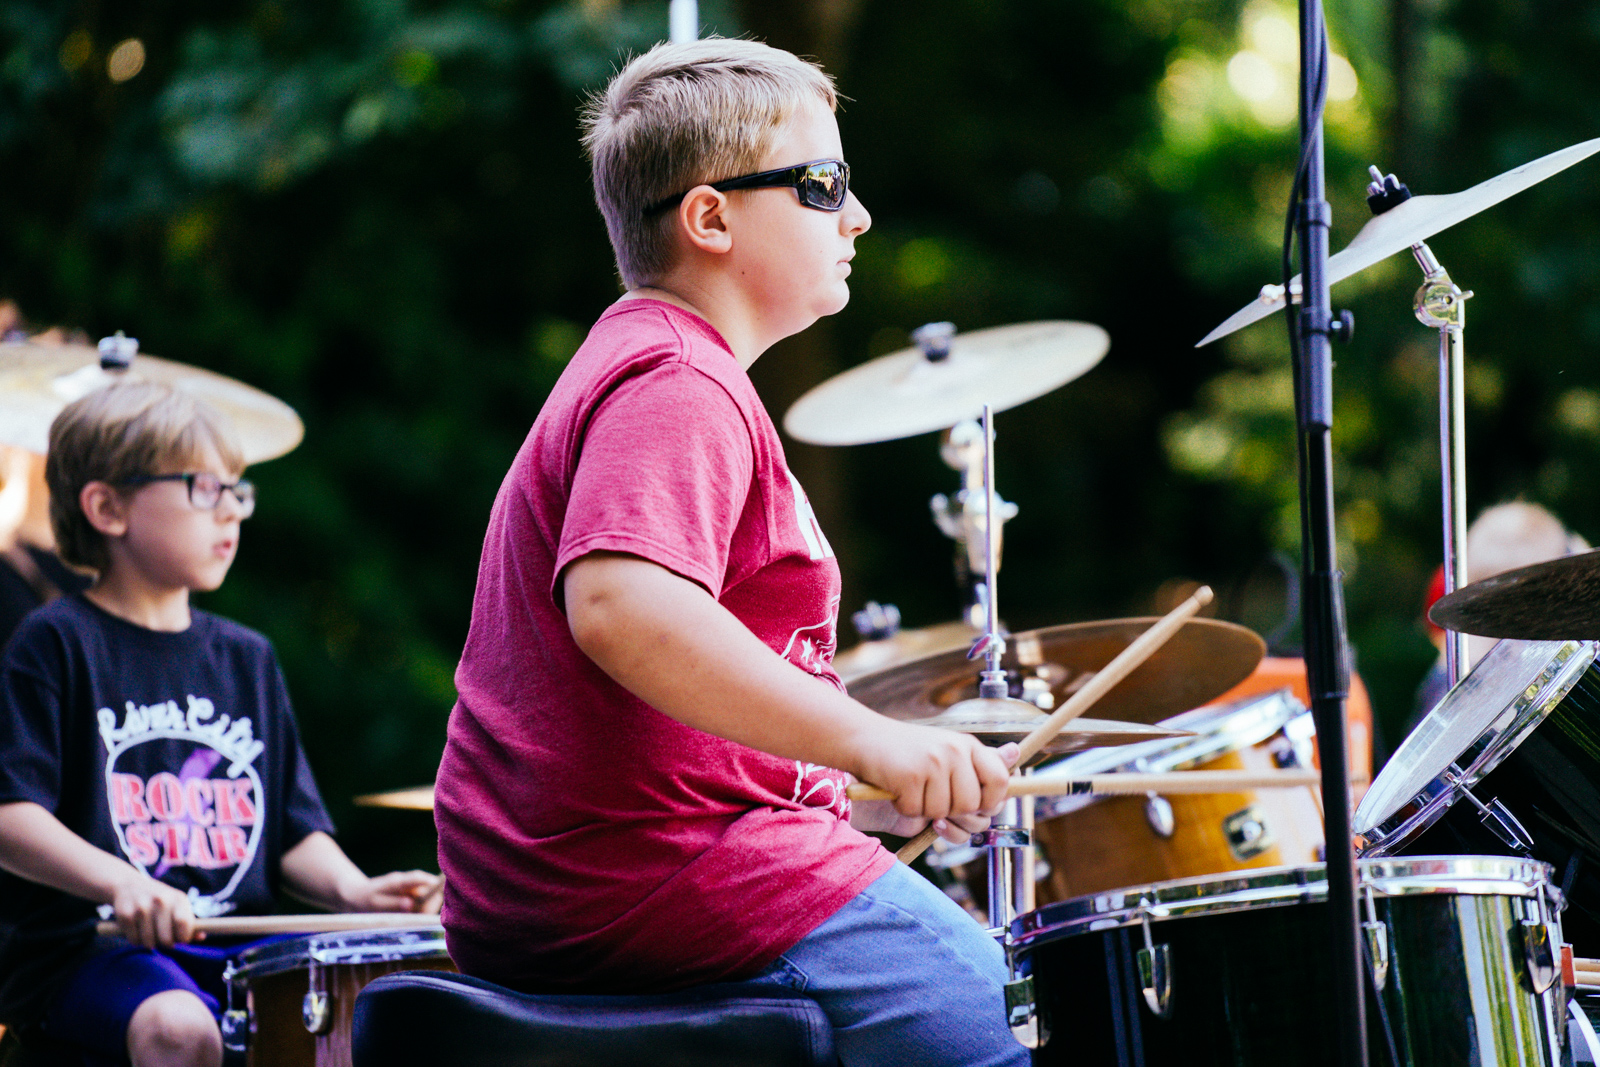 Young Rockers is for beginning music students ages 8-12. We make music education fun.